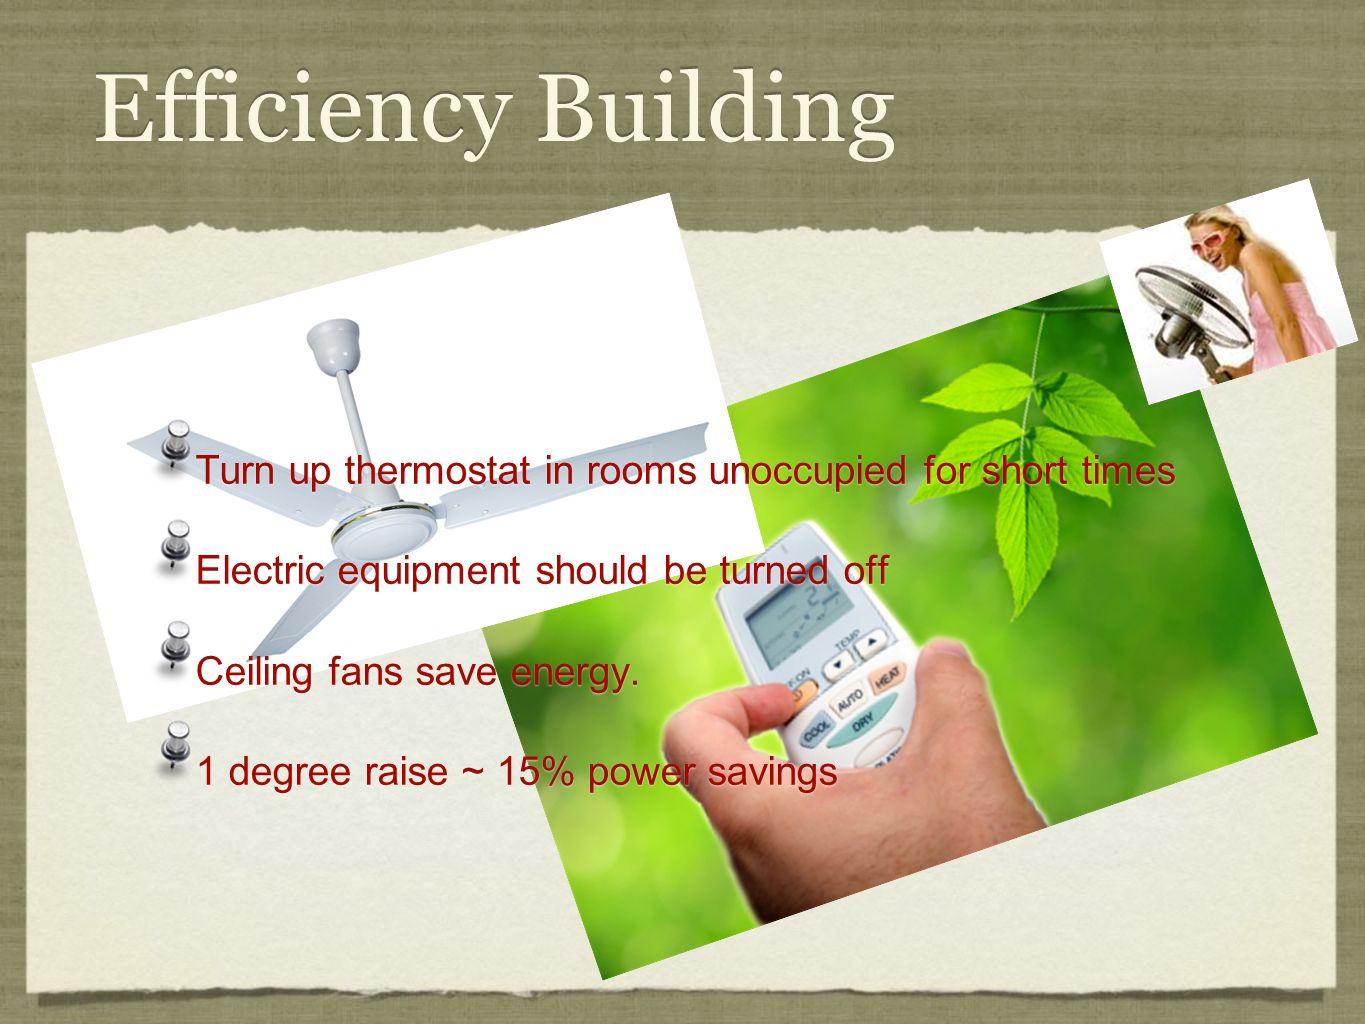 Efficiency Building Turn up thermostat in rooms unoccupied for short times Electric equipment should be turned off Ceiling fans save energy. 1 degree